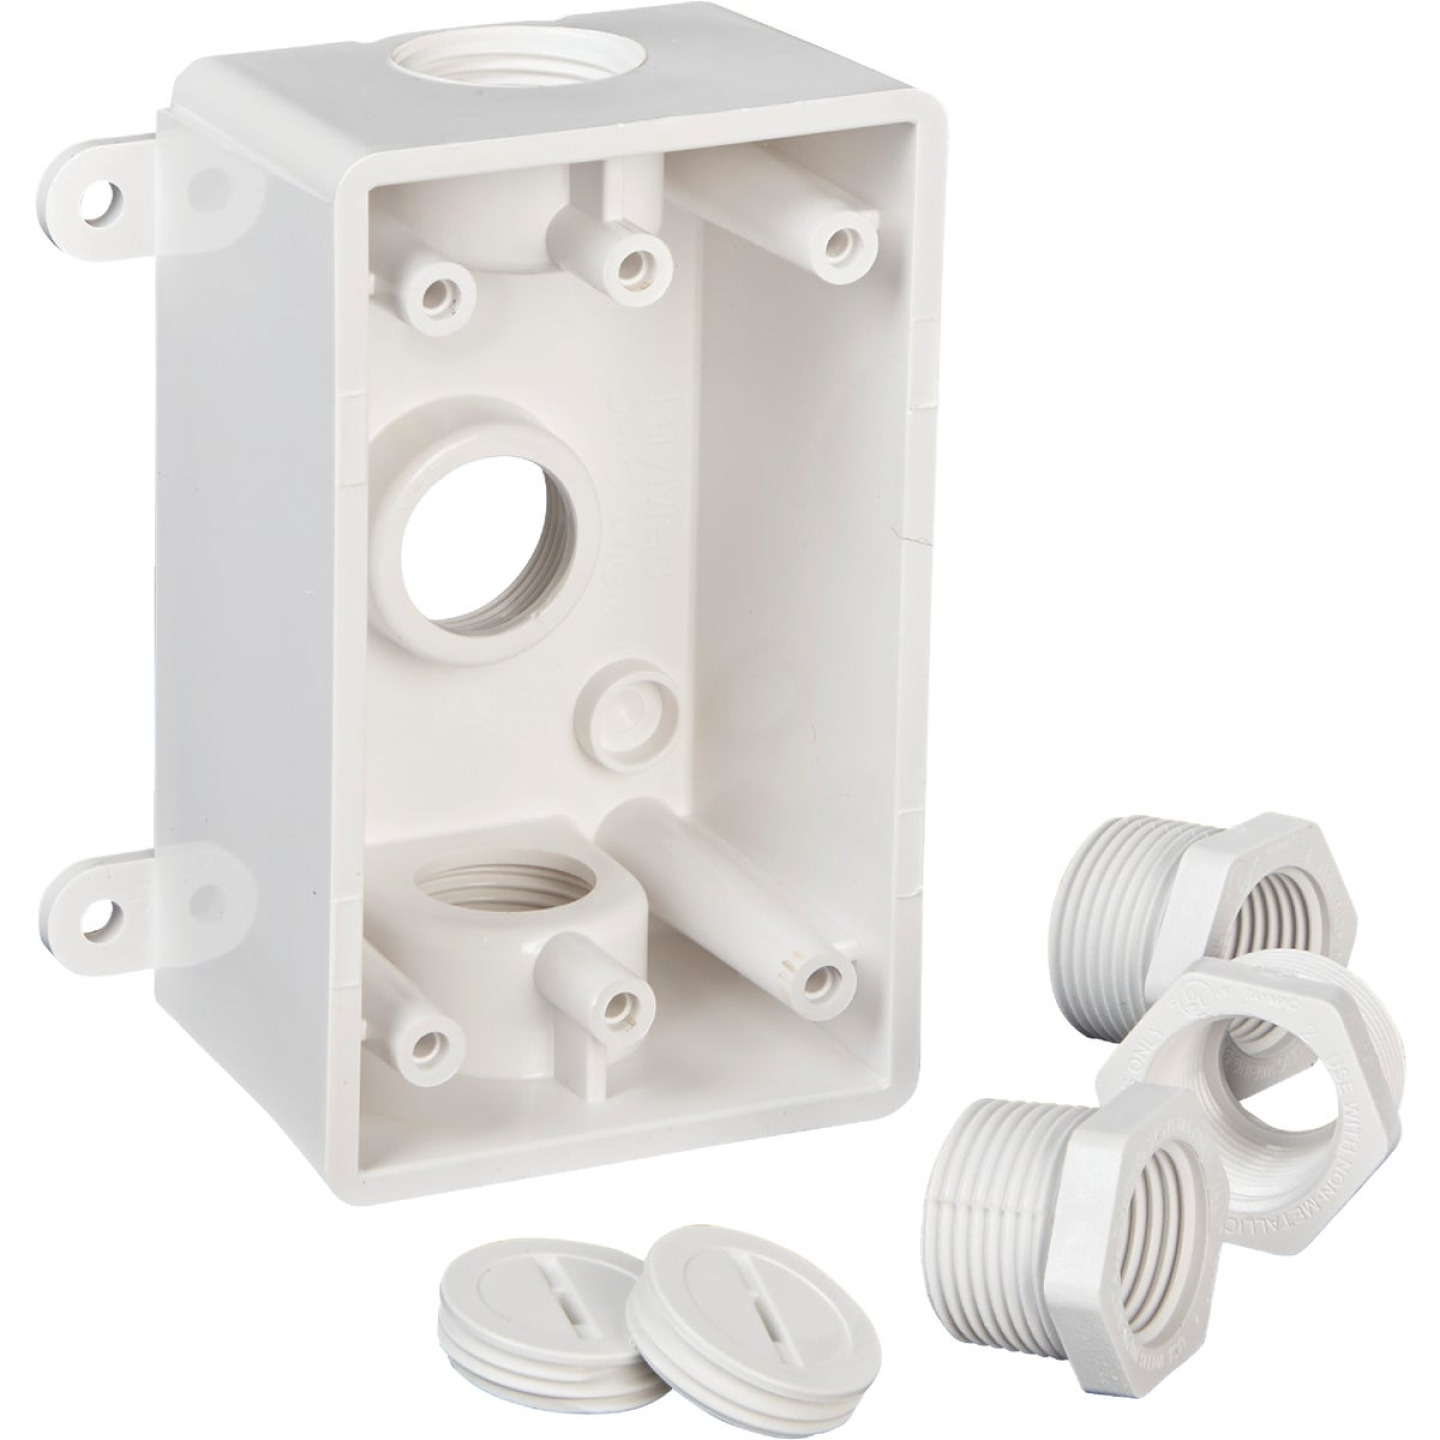 Bell Single Gang 1/2 In.,3/4 In. 3-Outlet White PVC Weatherproof Outdoor Outlet Box Image 3